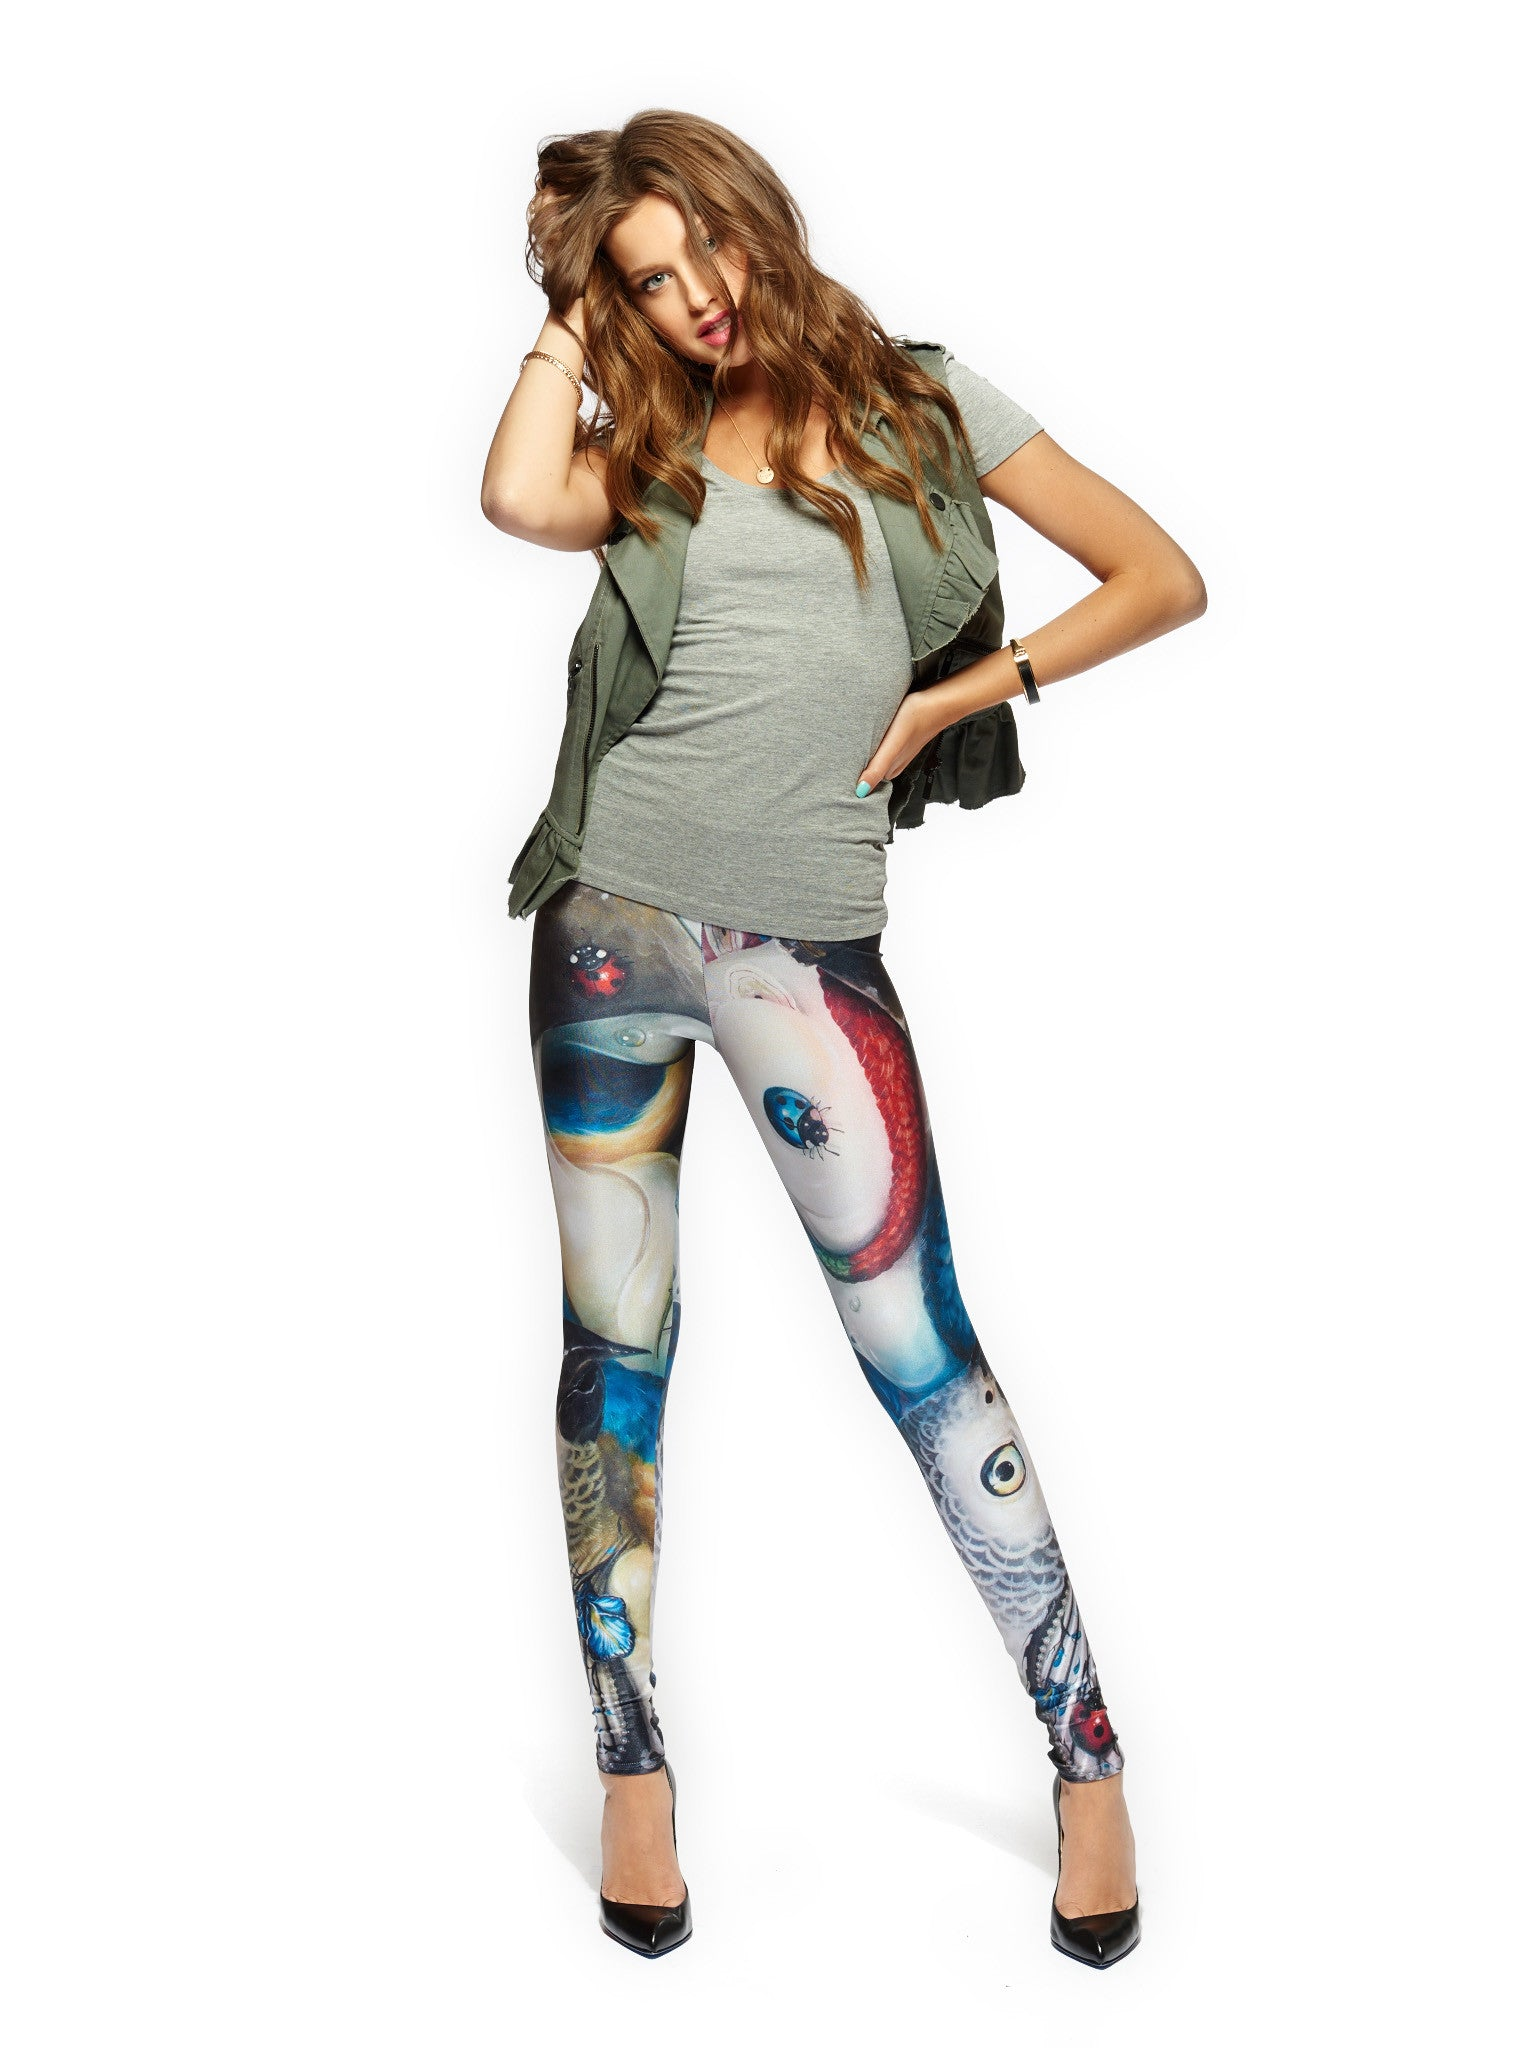 Once They Arrive Queen West Leggings - Nuvango Gallery & Goods - 1